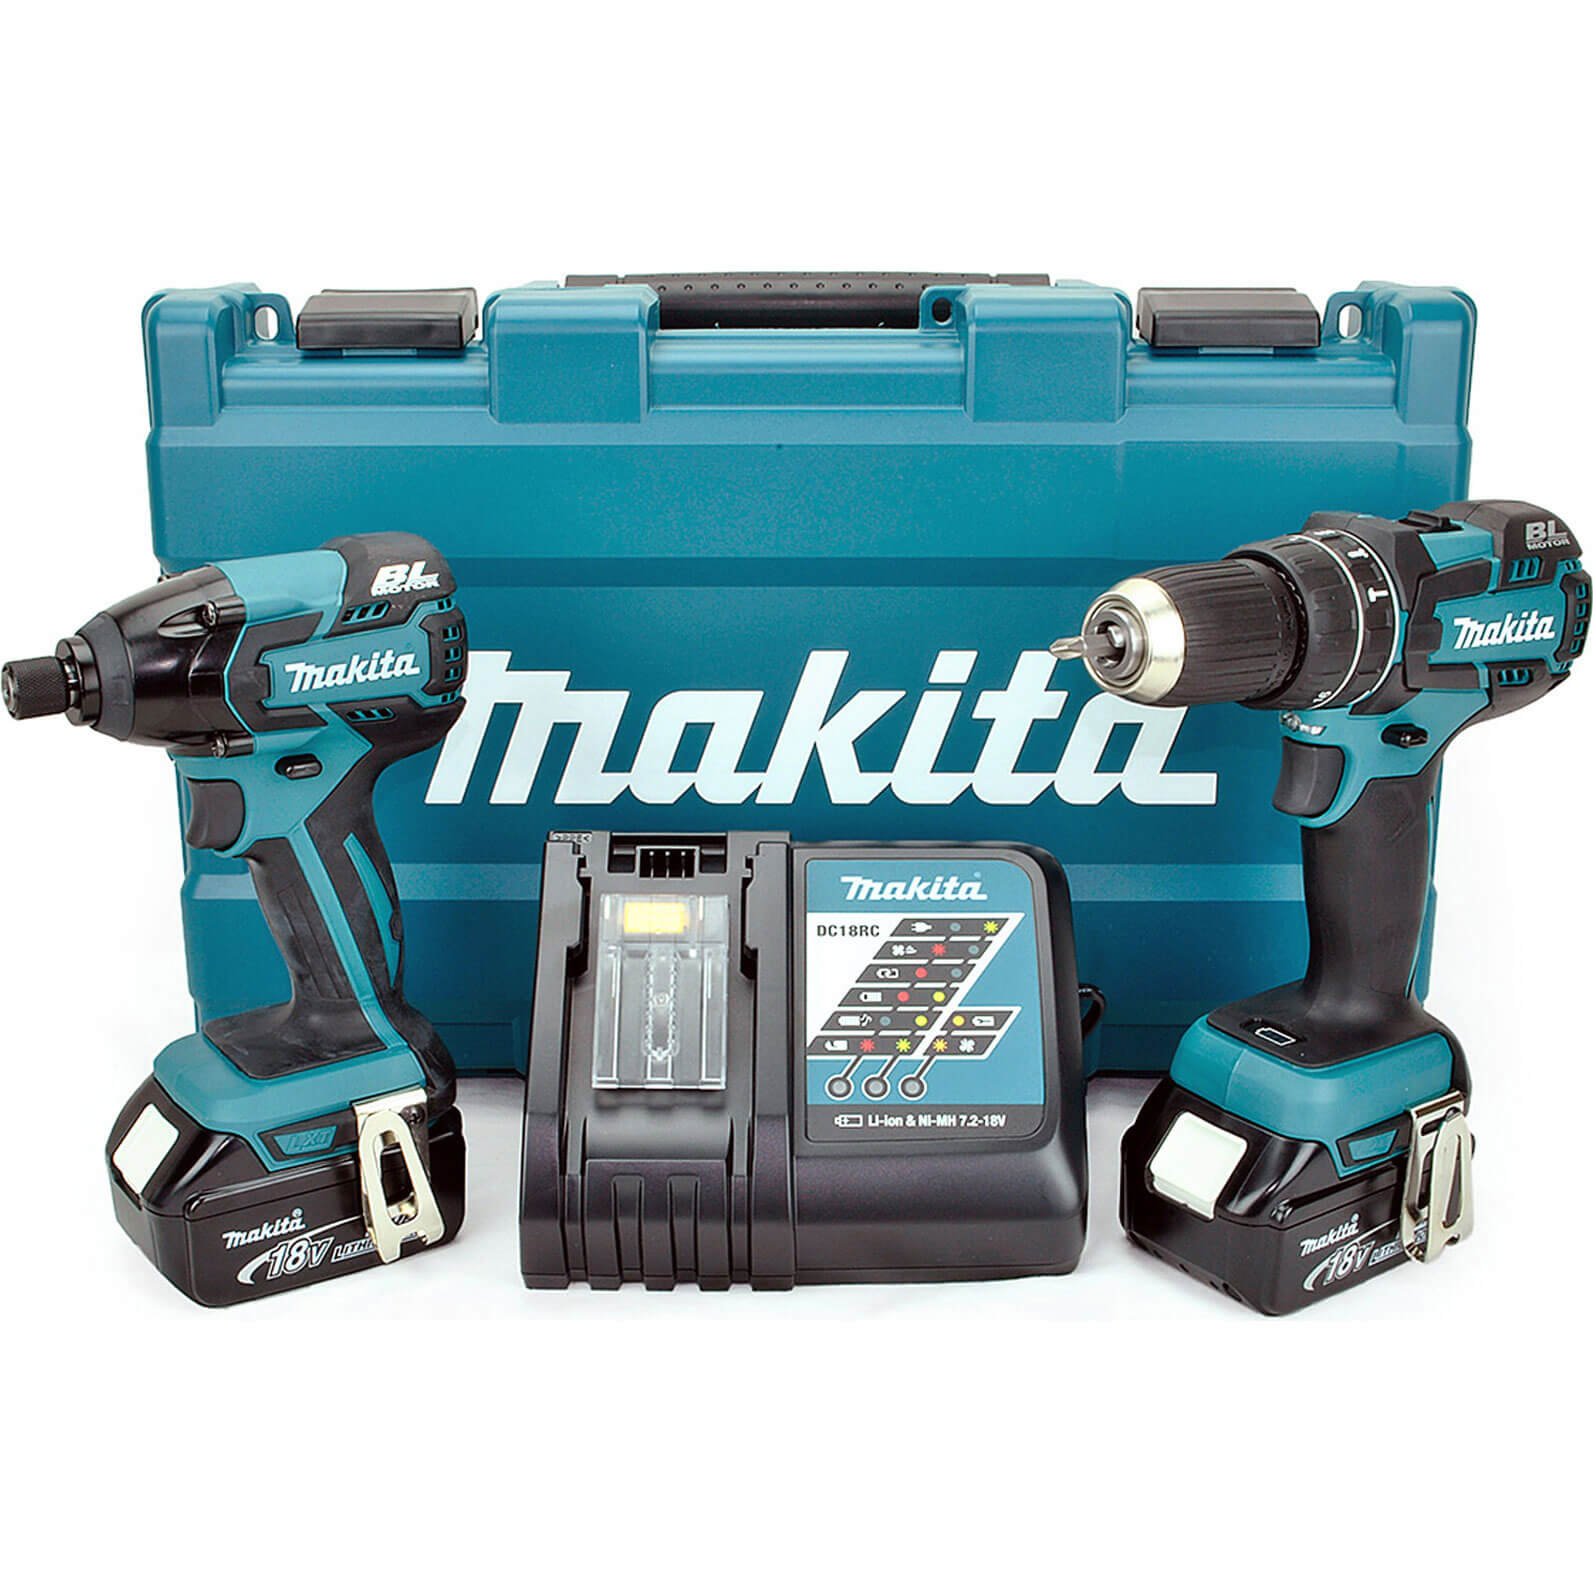 Makita DLX2002M 18V LXT Cordless Brushless Combi Drill & Impact Driver 2 x 4ah Liion Charger Case